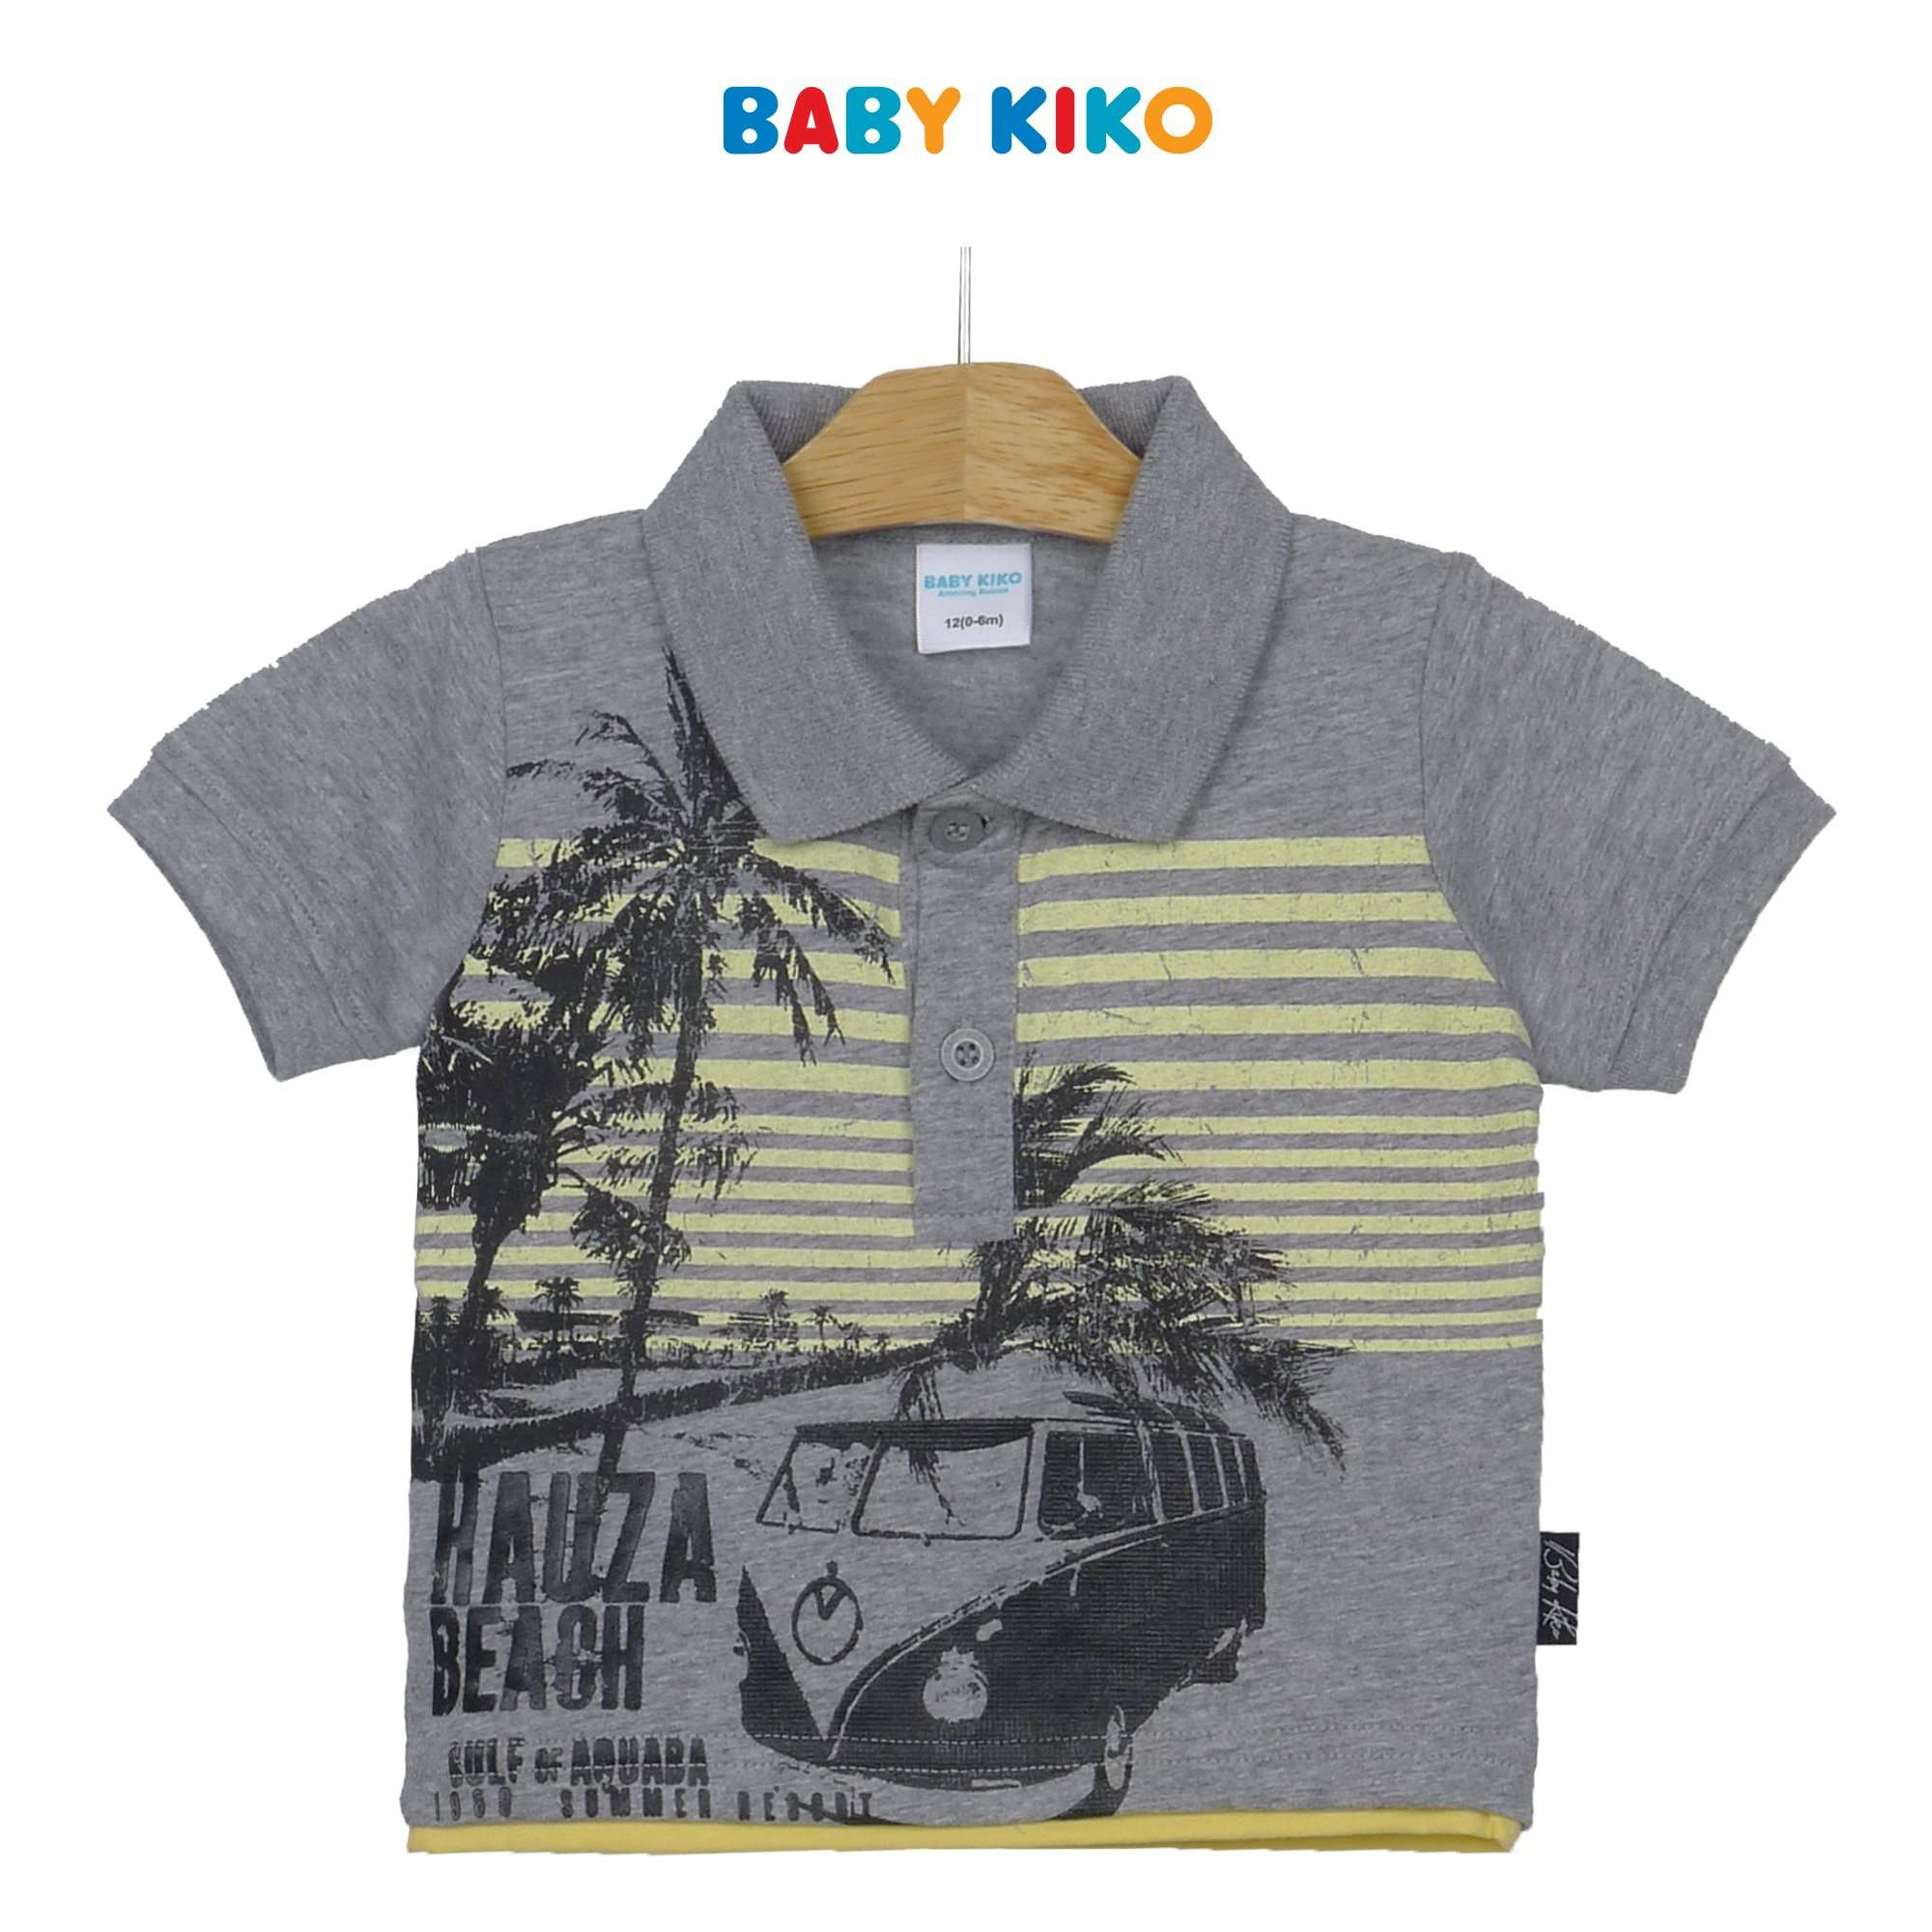 Baby KIKO Baby Boy Collar Short Sleeve Tee 330084-121 : Buy Baby KIKO online at CMG.MY